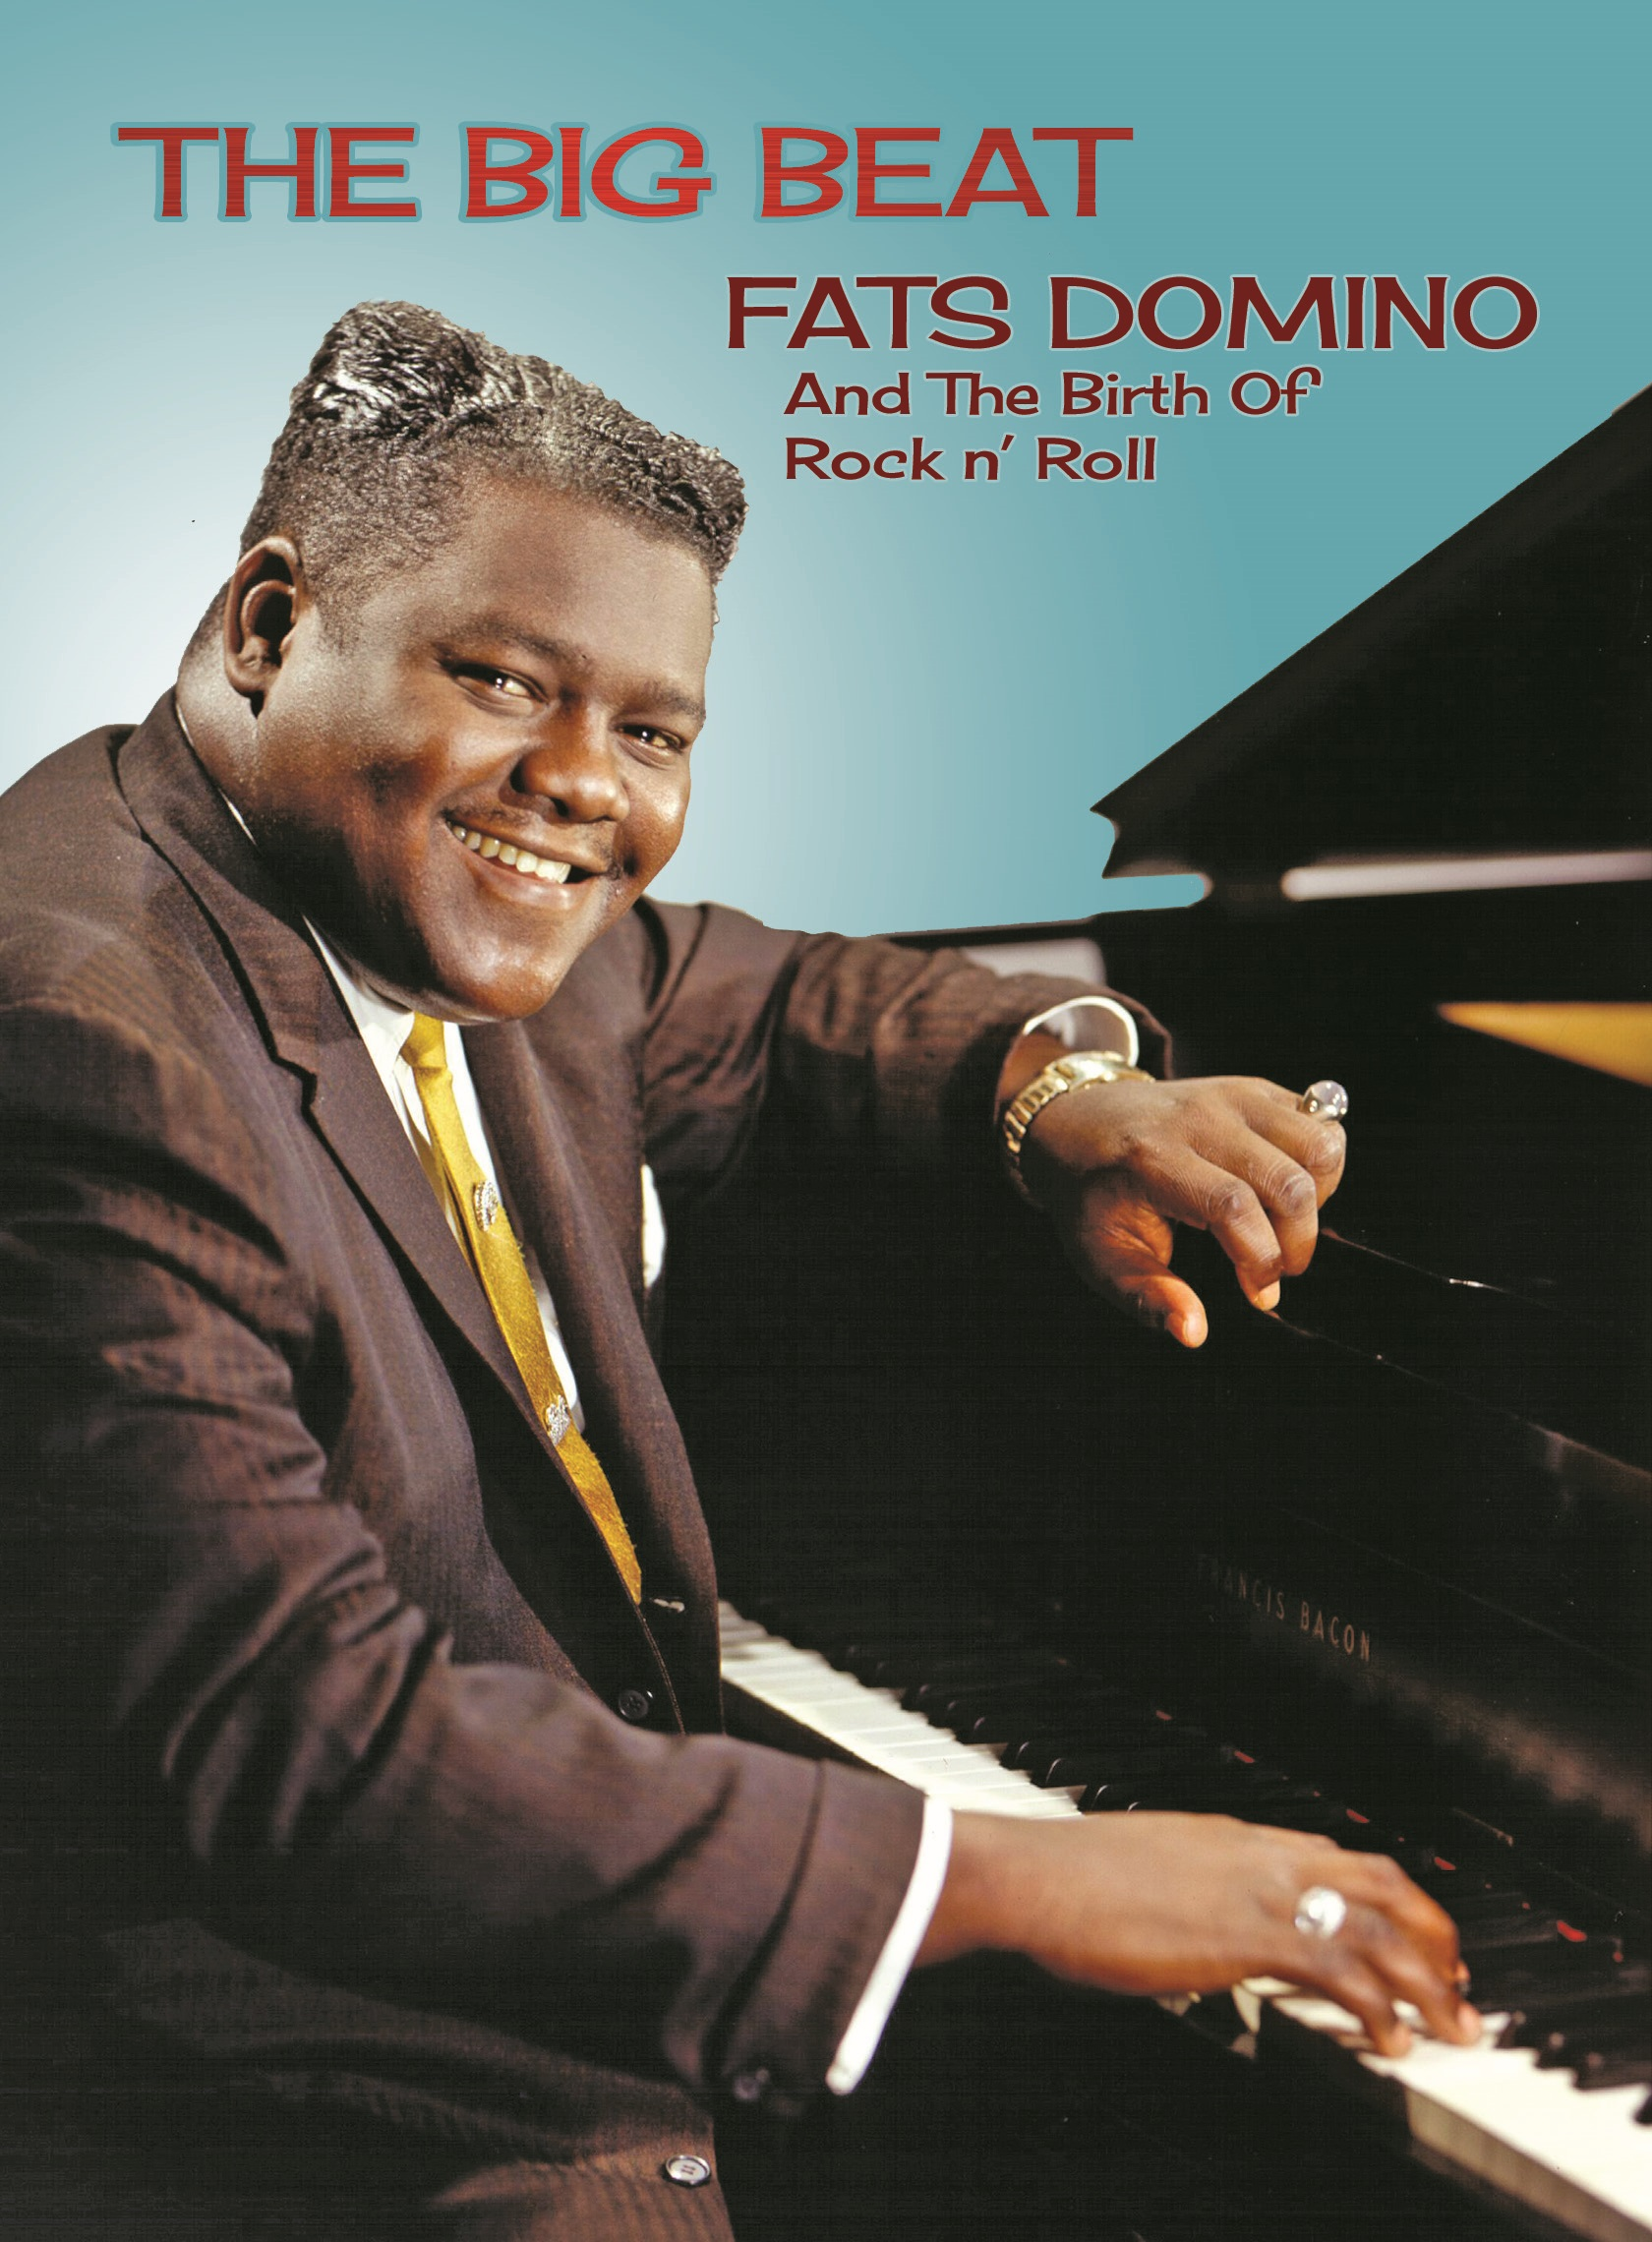 The Big Beat: Fats Domino and the Birth of Rock 'n' Roll